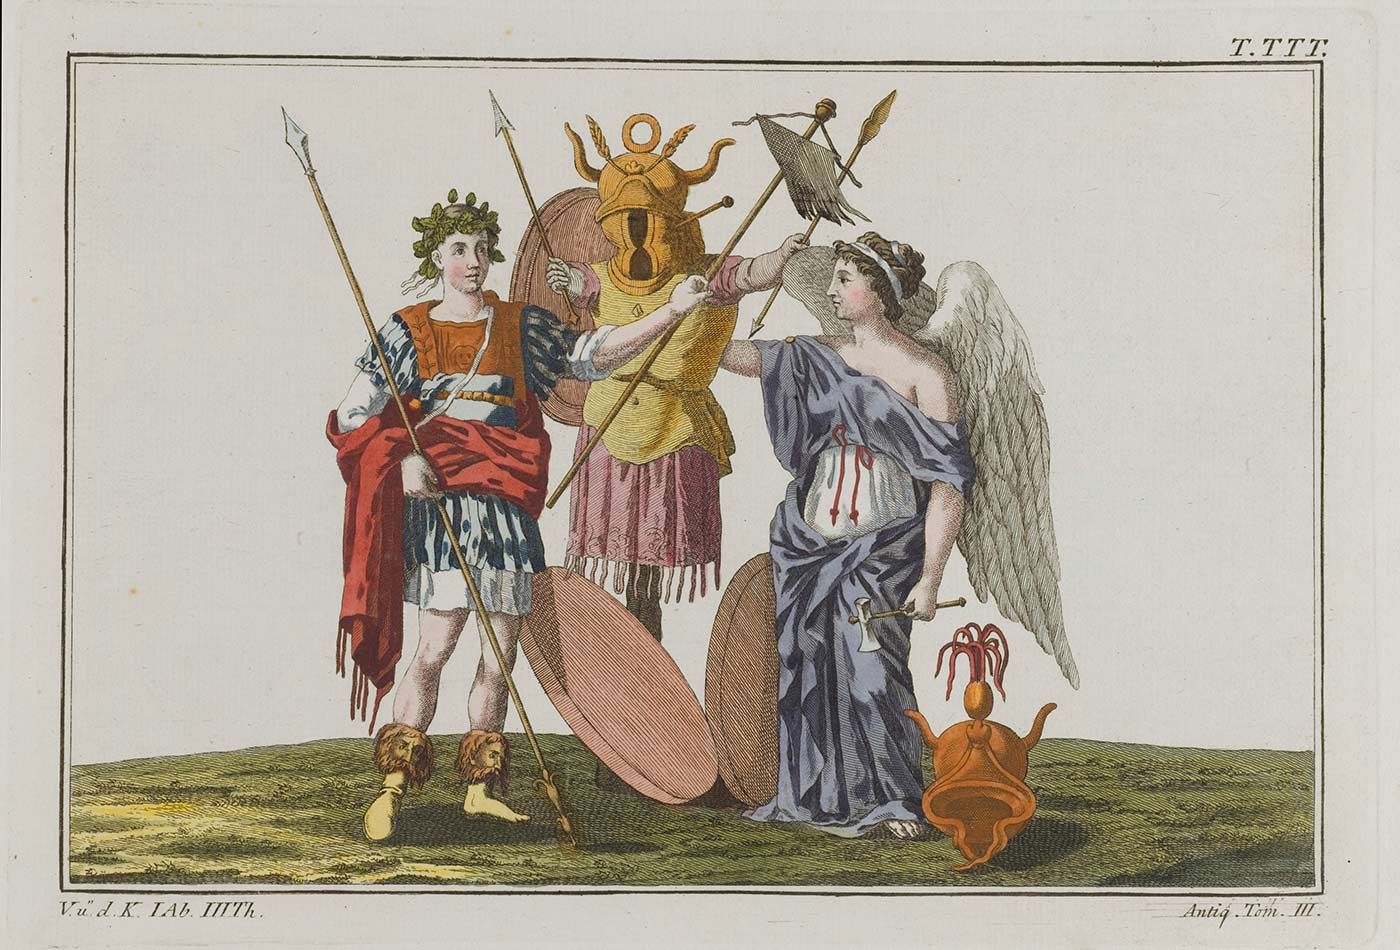 A Roman trophy. Coloured engraving, ca. 1804-1811.